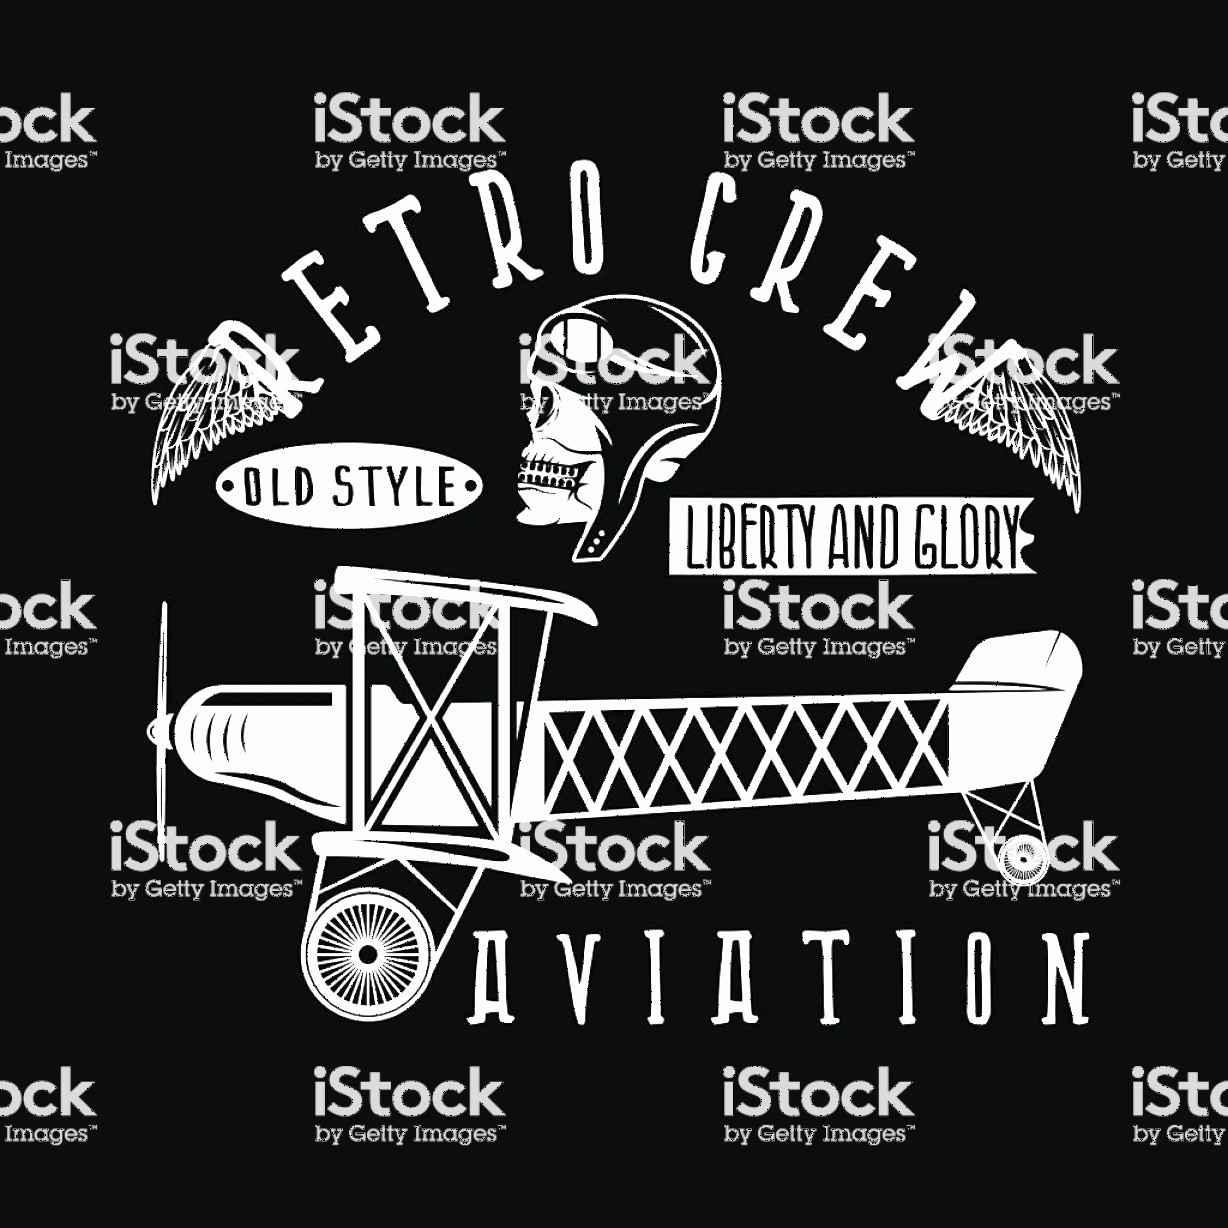 Aviation Vector Designs: Retro Aviation Vector Design With Skull Airplane And Wings Gm